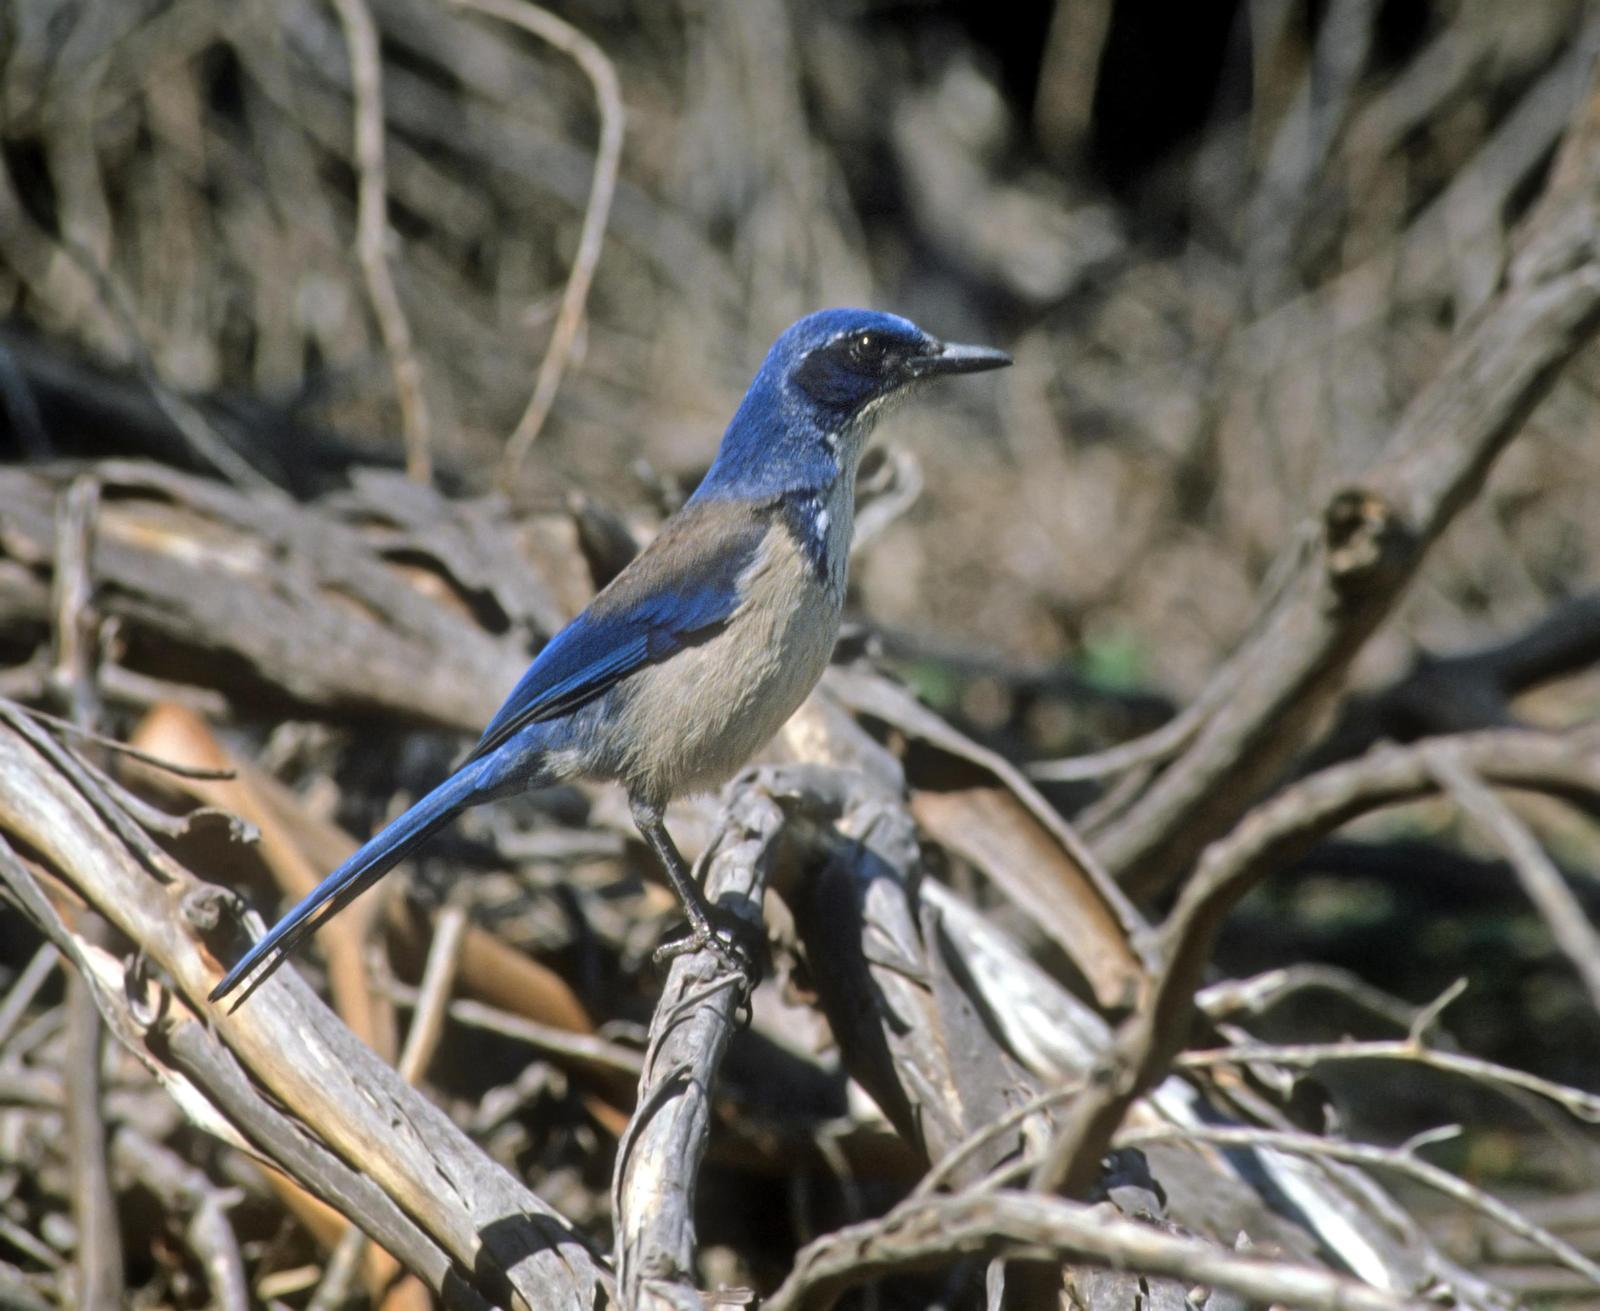 Island Scrub-Jay Photo by Steven Mlodinow